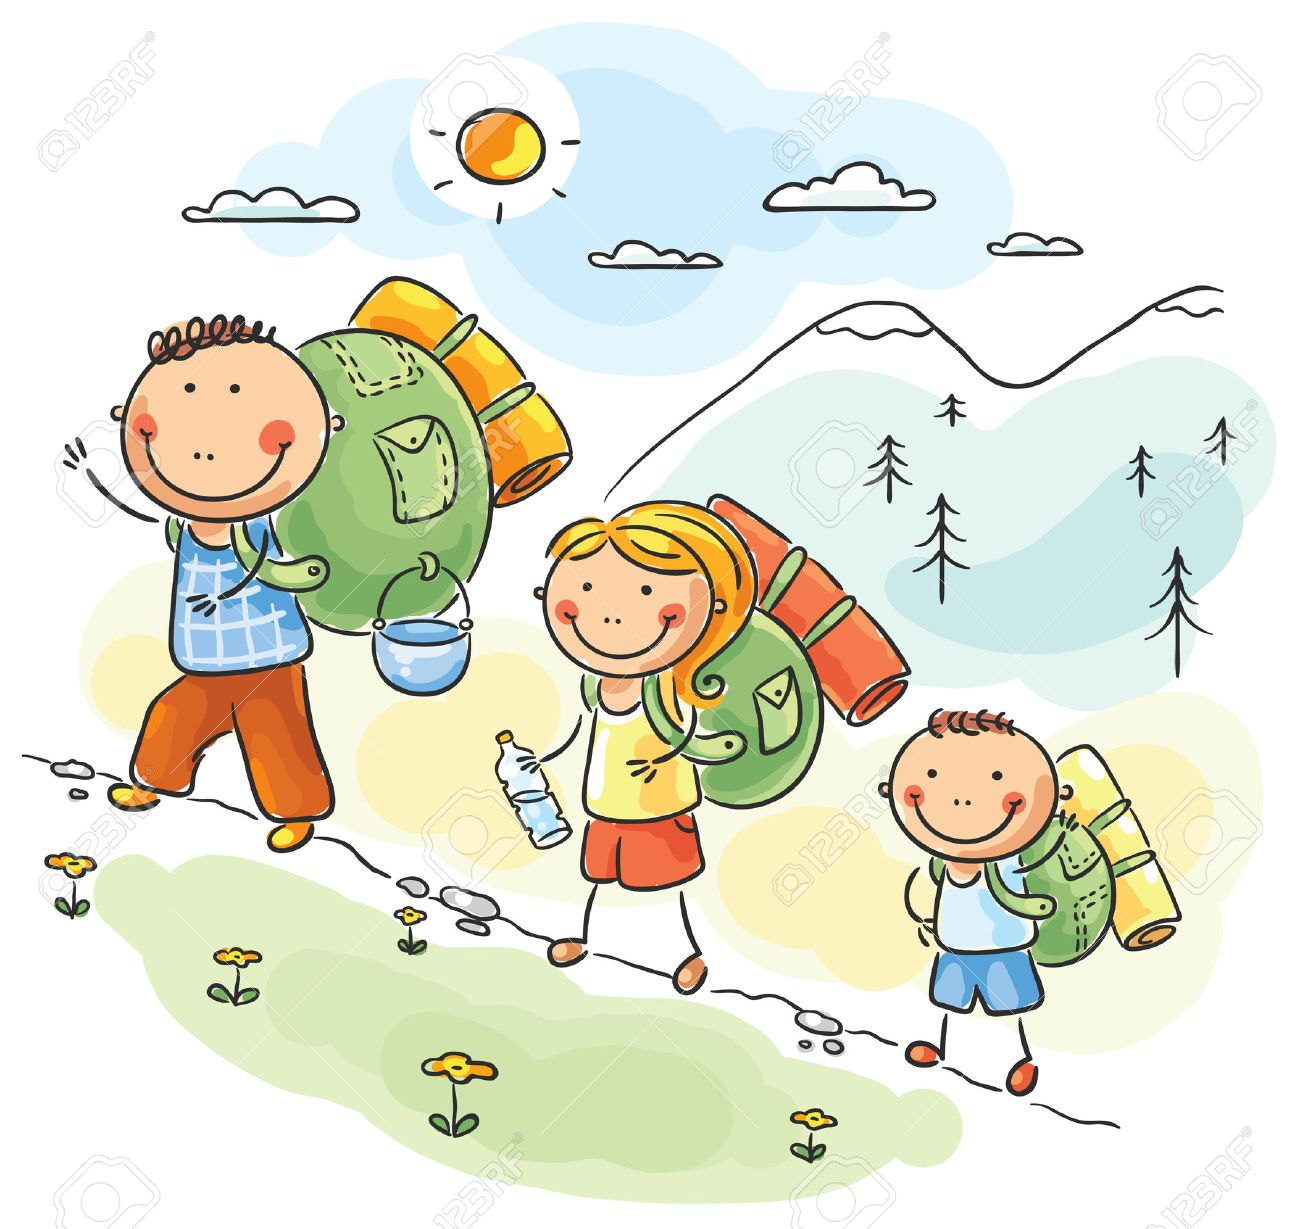 Cartoon family hiking in the mountains.